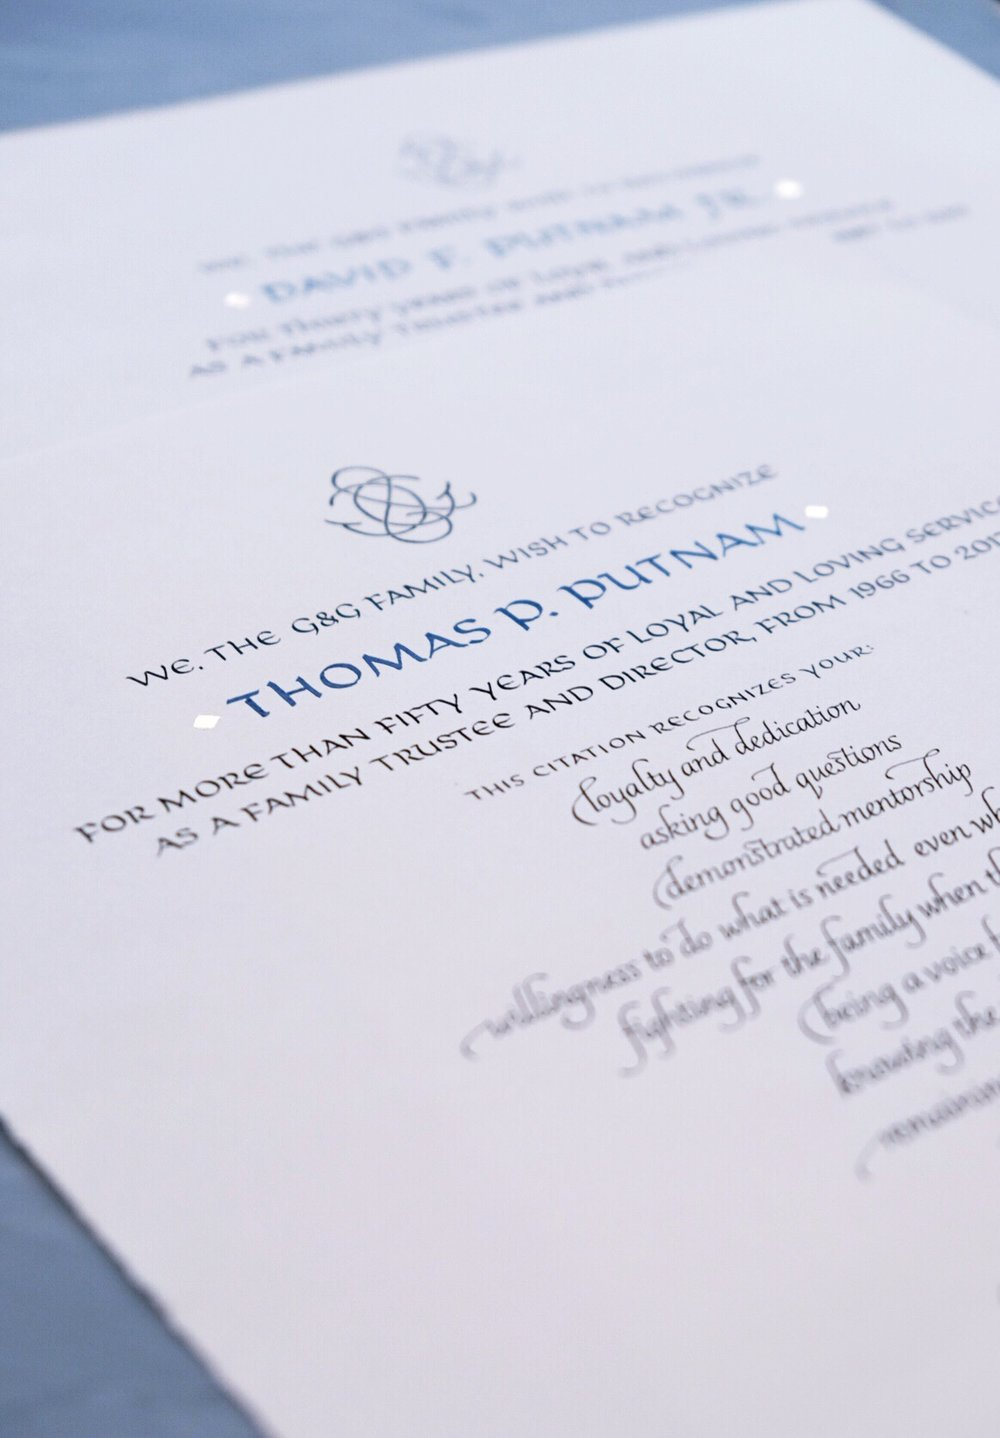 Board of Trustees certificates of recognition, handwritten in calligraphy | www.chavelli.com